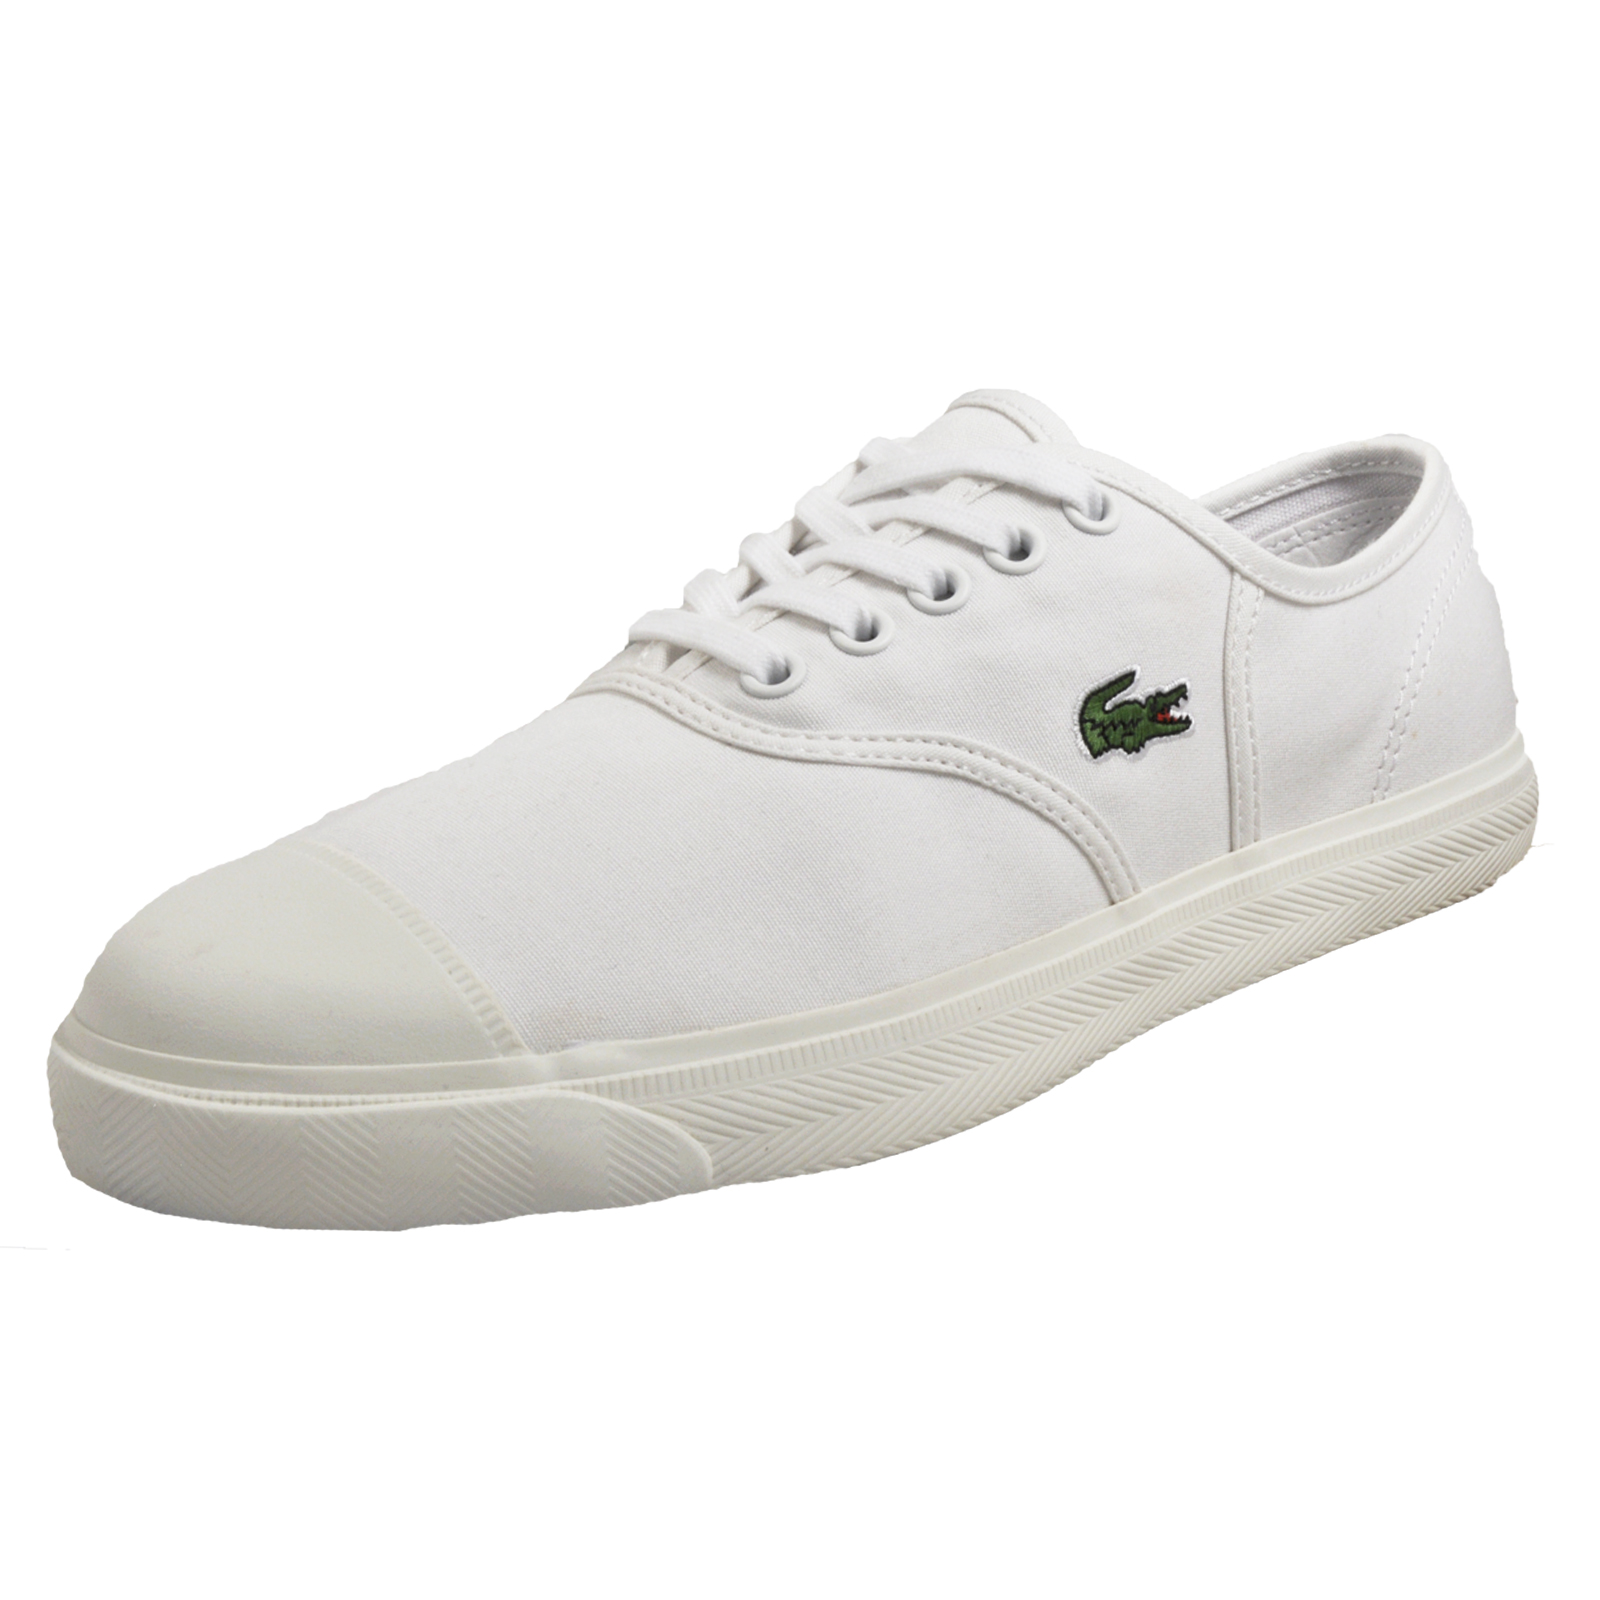 60c47ed47 Details about Lacoste Rene 117 Women s Classic Casual Designer Plimsol  Trainers White B Grade